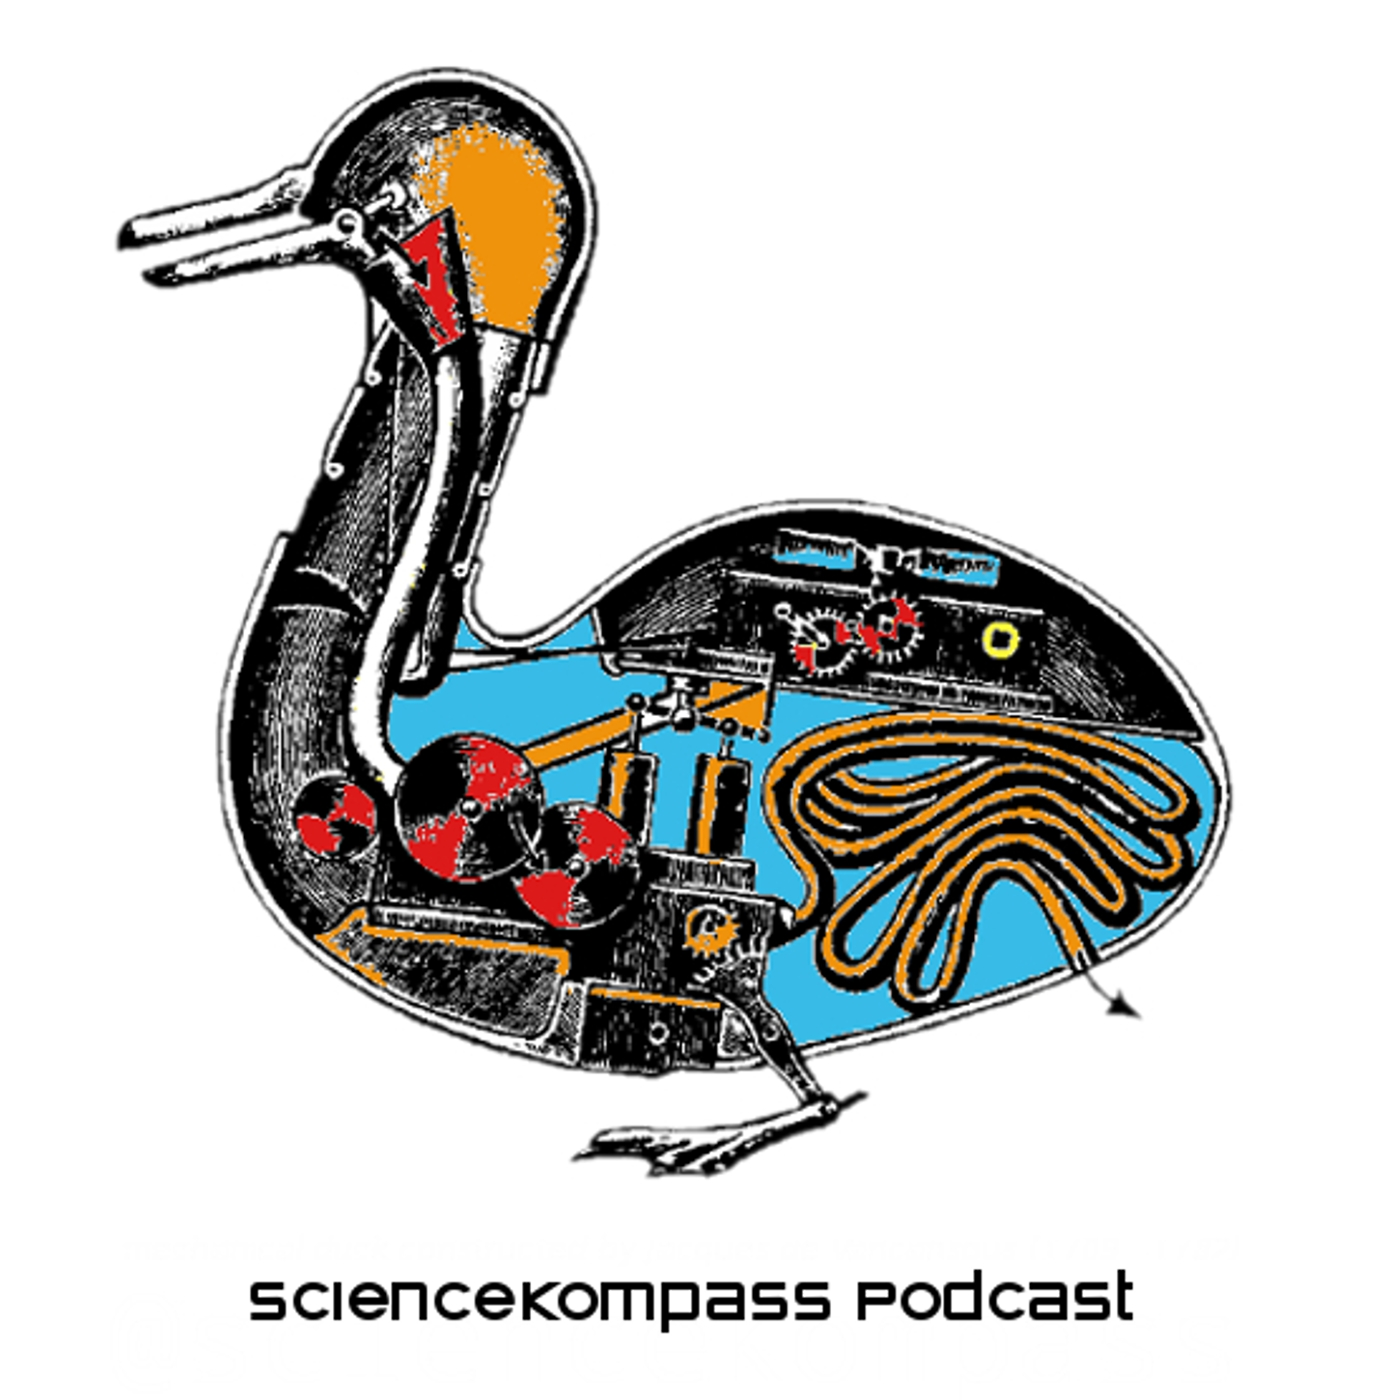 SciencekompassPodcast